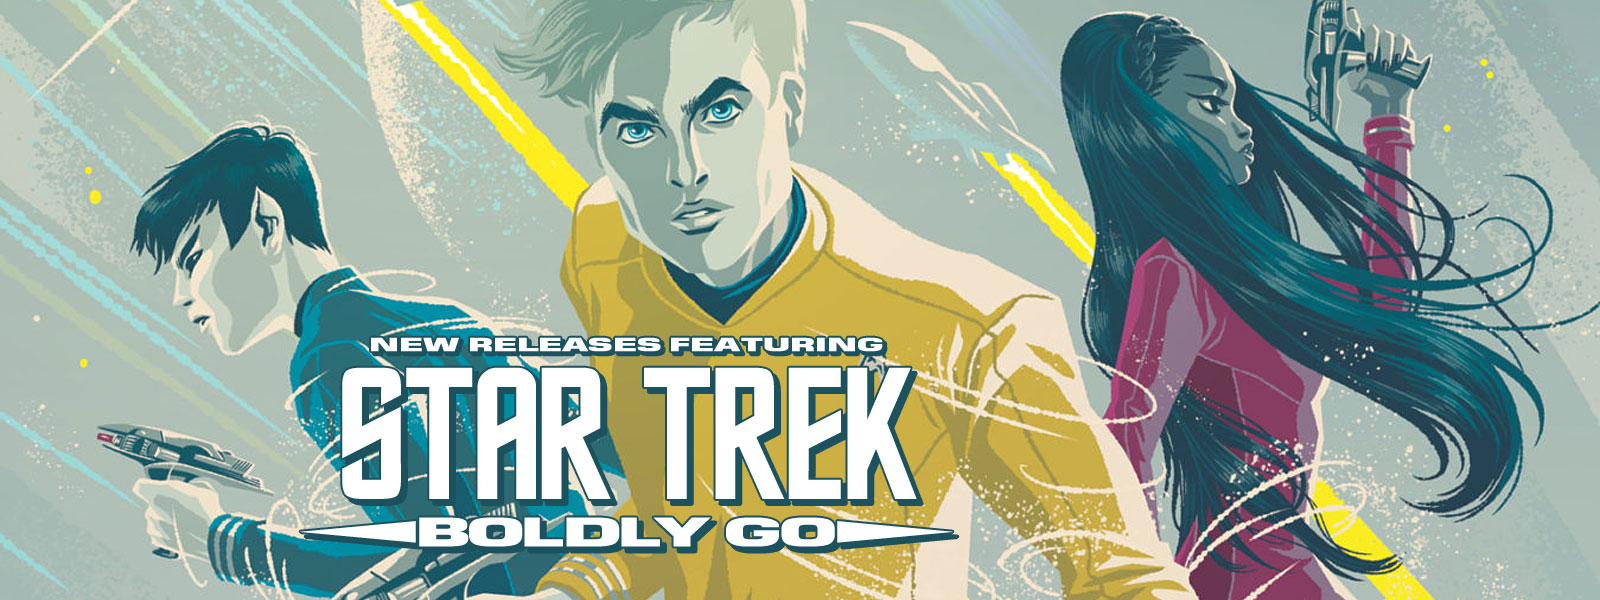 New Releases for 19 October 2016 featuring Star Trek: Boldly Go #1